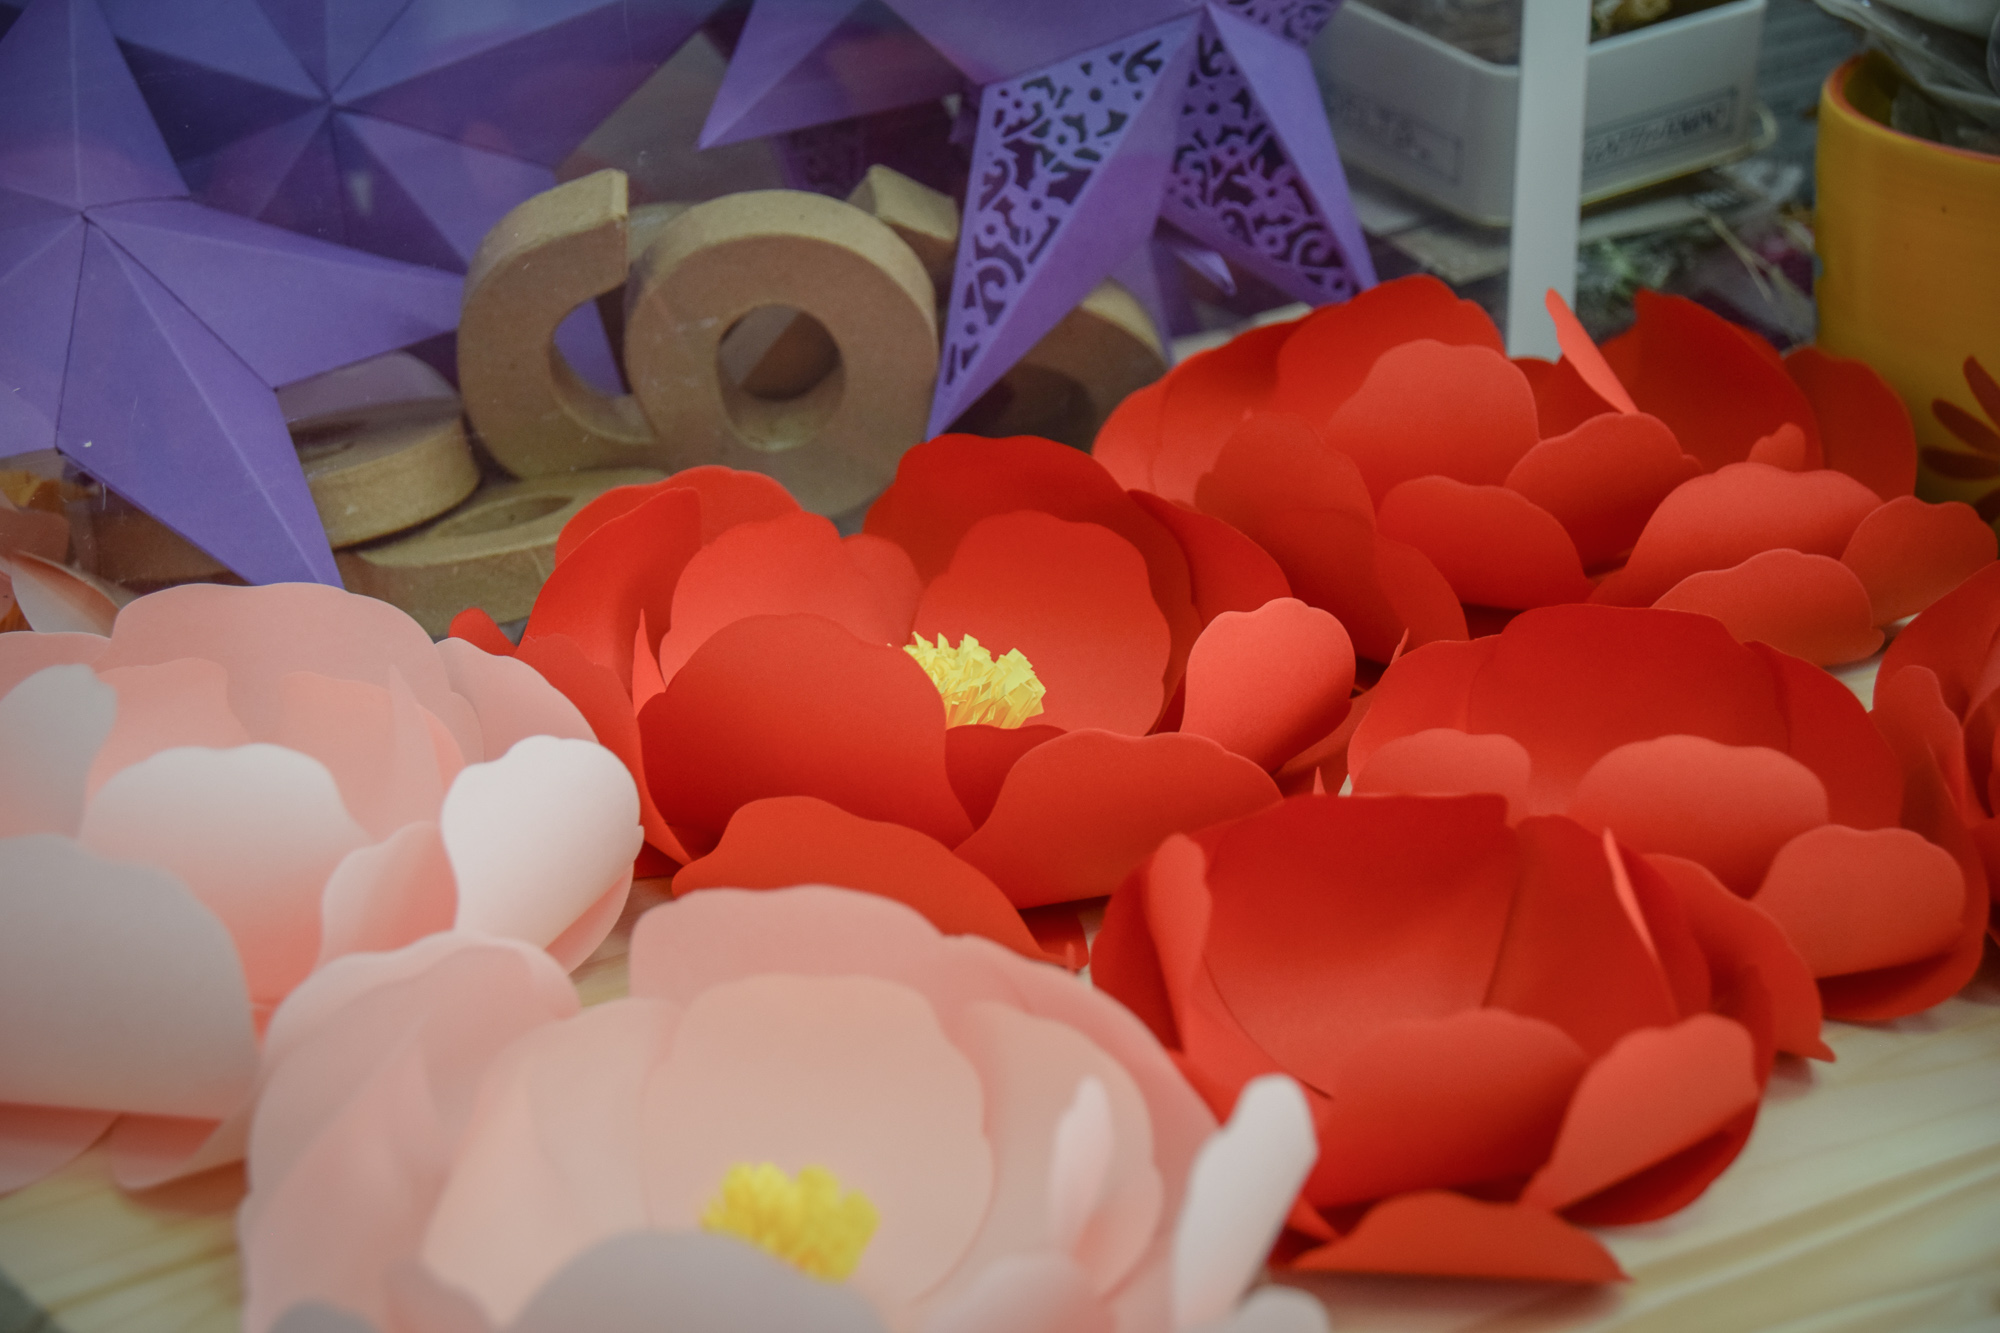 Paper Flowers made with Sizzix Large Rose die by David Tutera